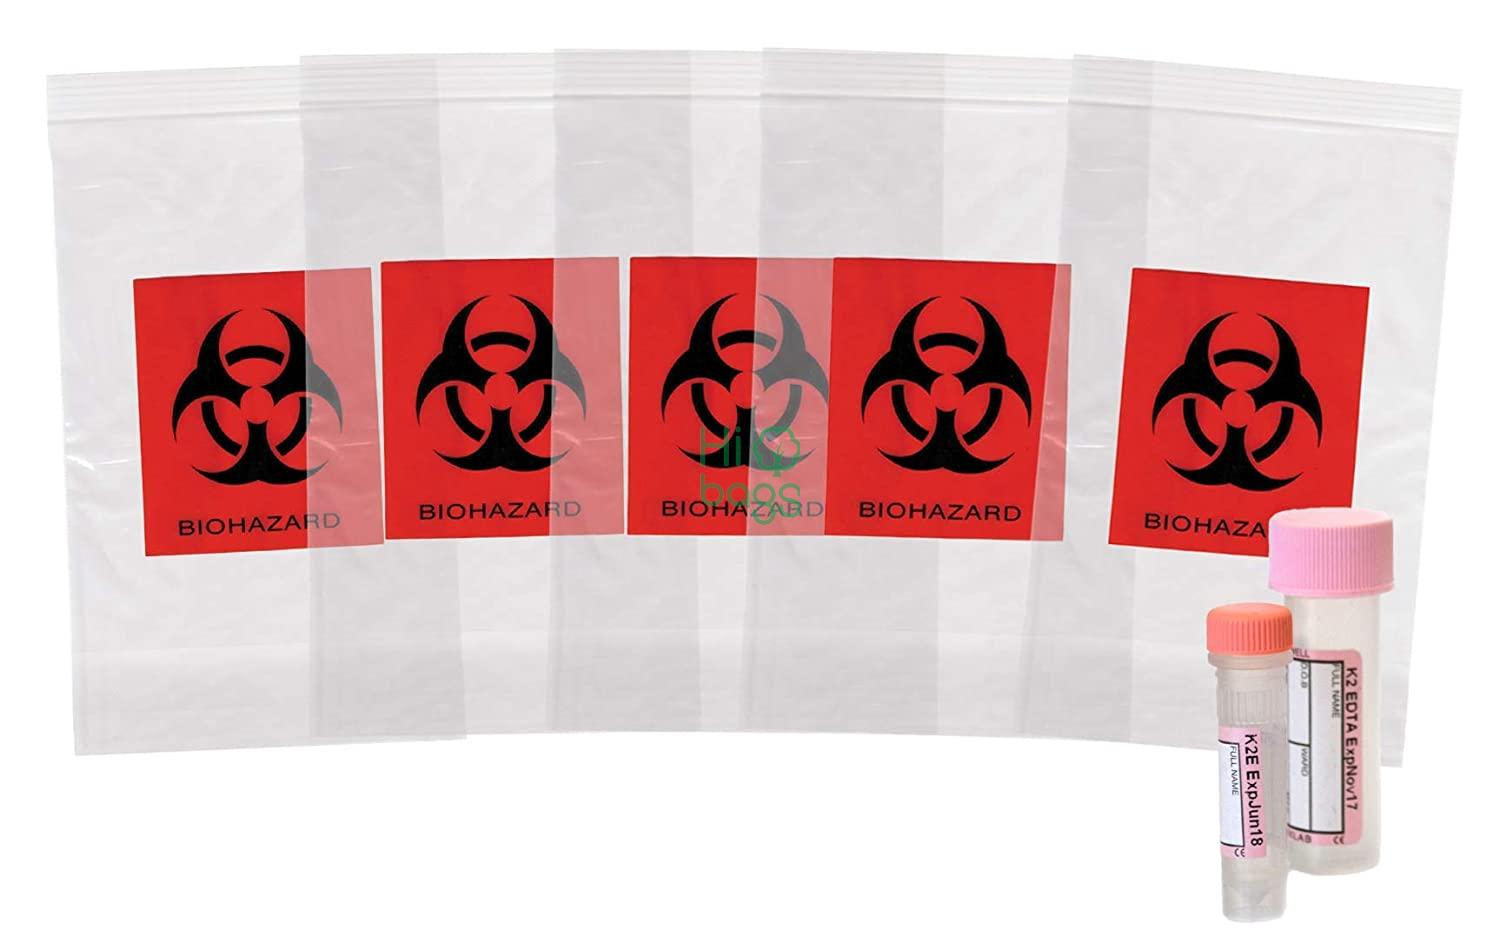 Biohazard Specimen Bags Black and Red  Zip Lock Top Plastic Pouch Bags Printed Polyethylene Transport Bags M